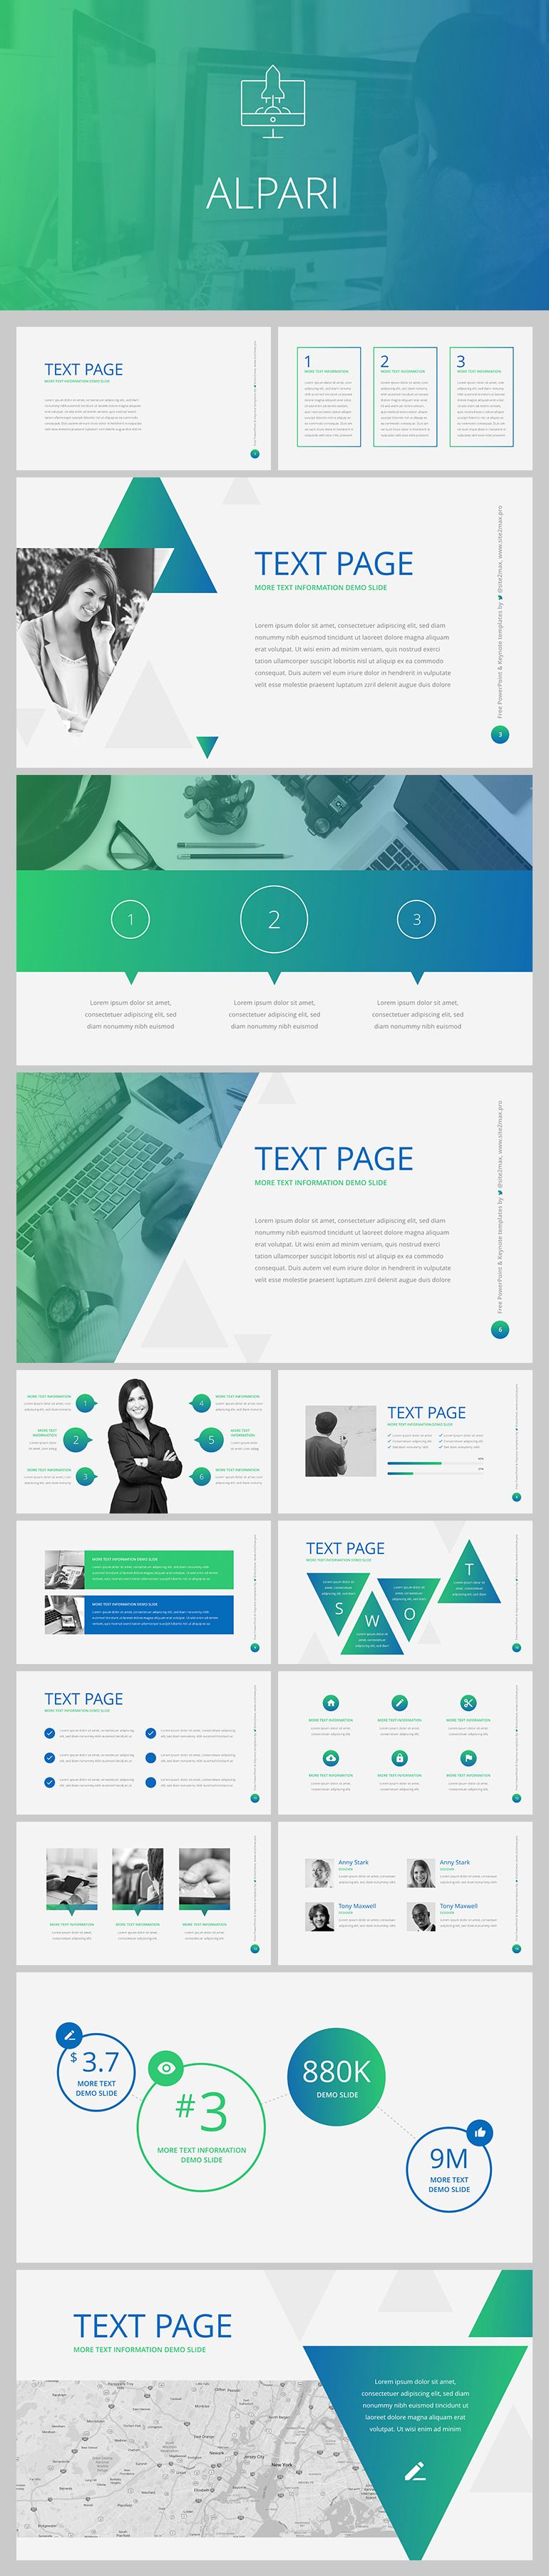 ppt free powerpoint template for ppt free powerpoint template for corporate introduction toneelgroepblik